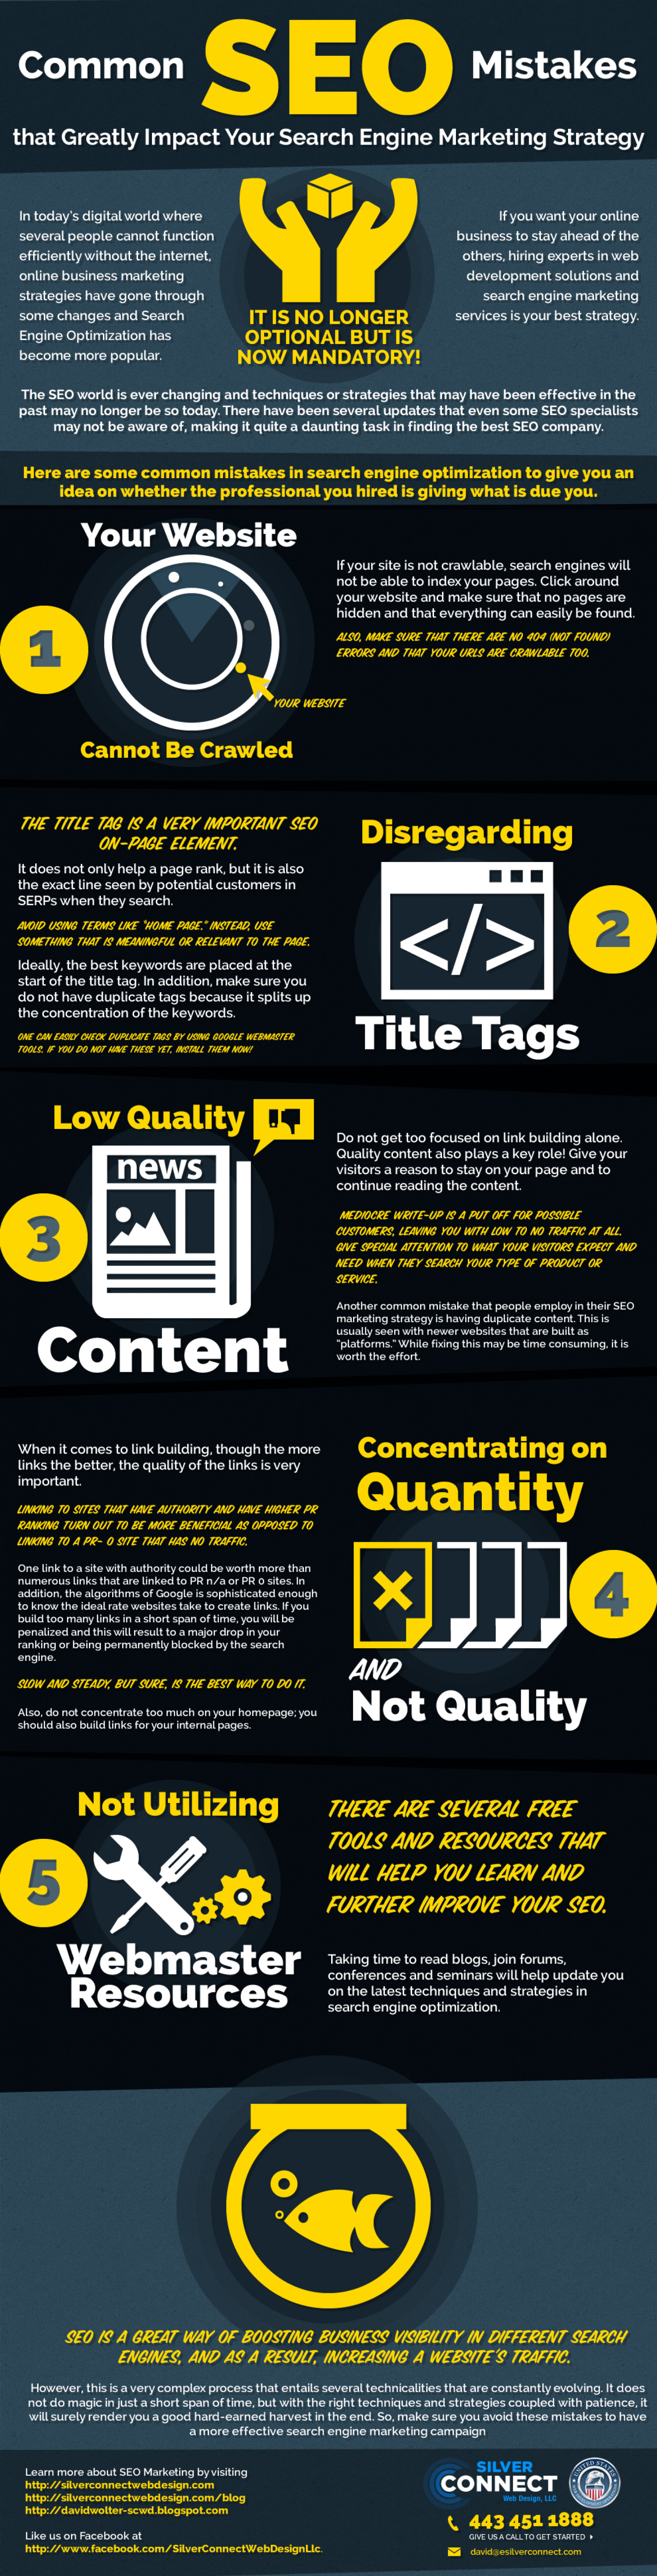 Common SEO Mistakes that Greatly Impact Your Search Engine Marketing Strategy Infographic